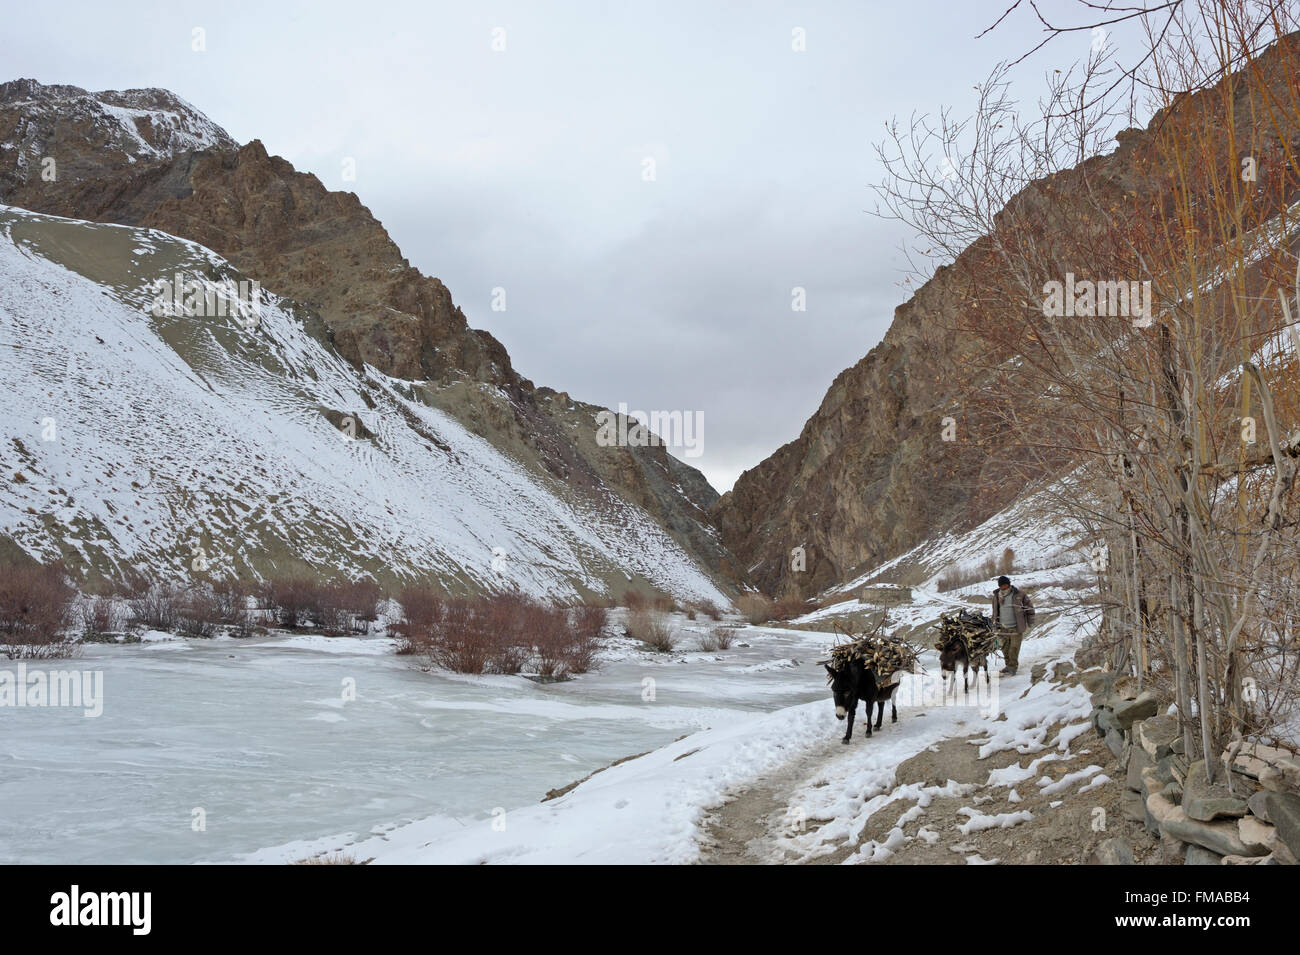 Mountain ponies, beast of burden,  carrying load and walking across a frozen stream in the treeless trans-himalayan - Stock Image